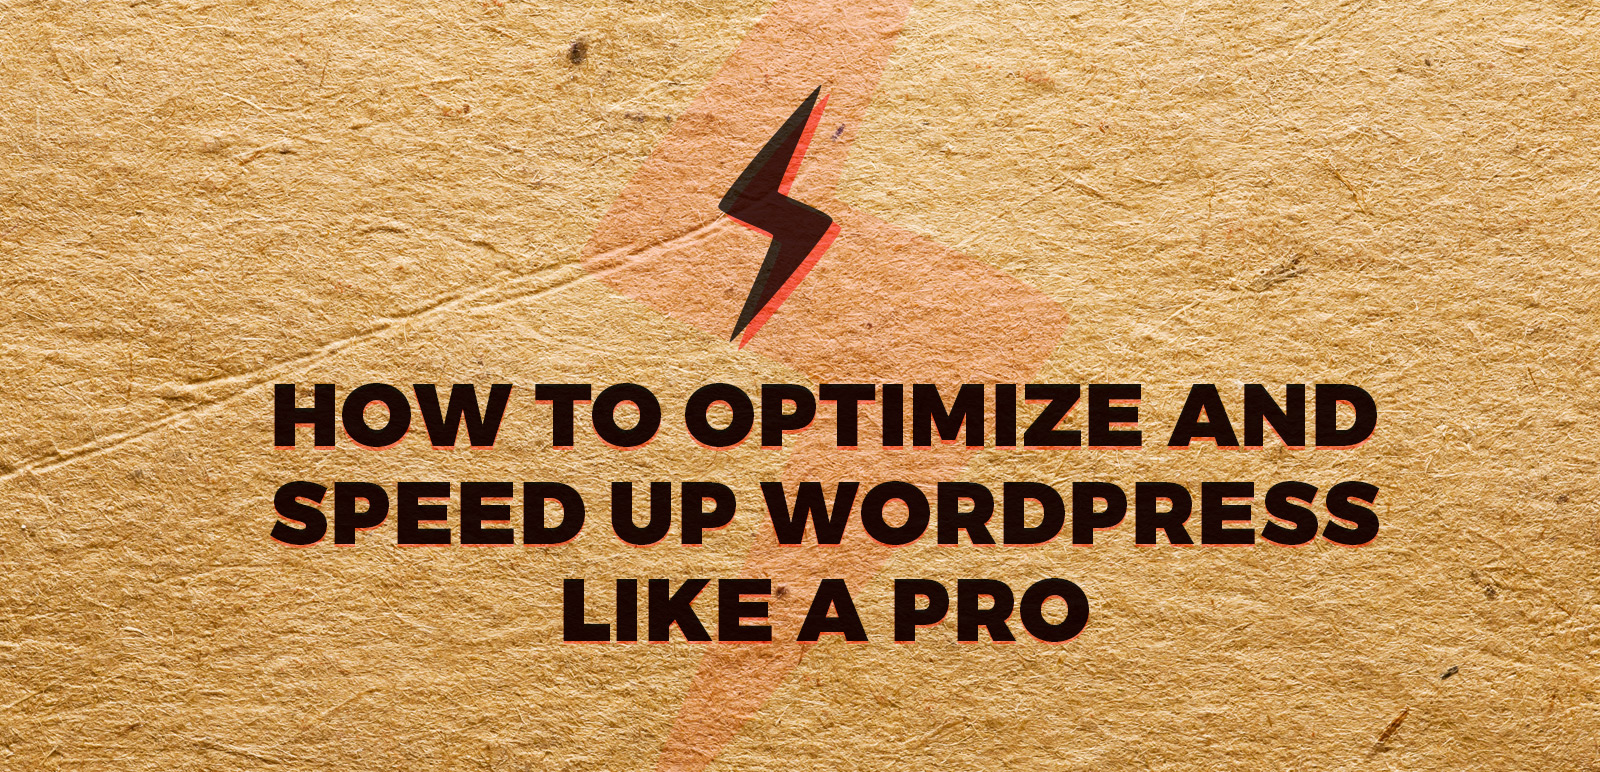 How to optimise and speed up WordPress like a pro - Pixel Kicks